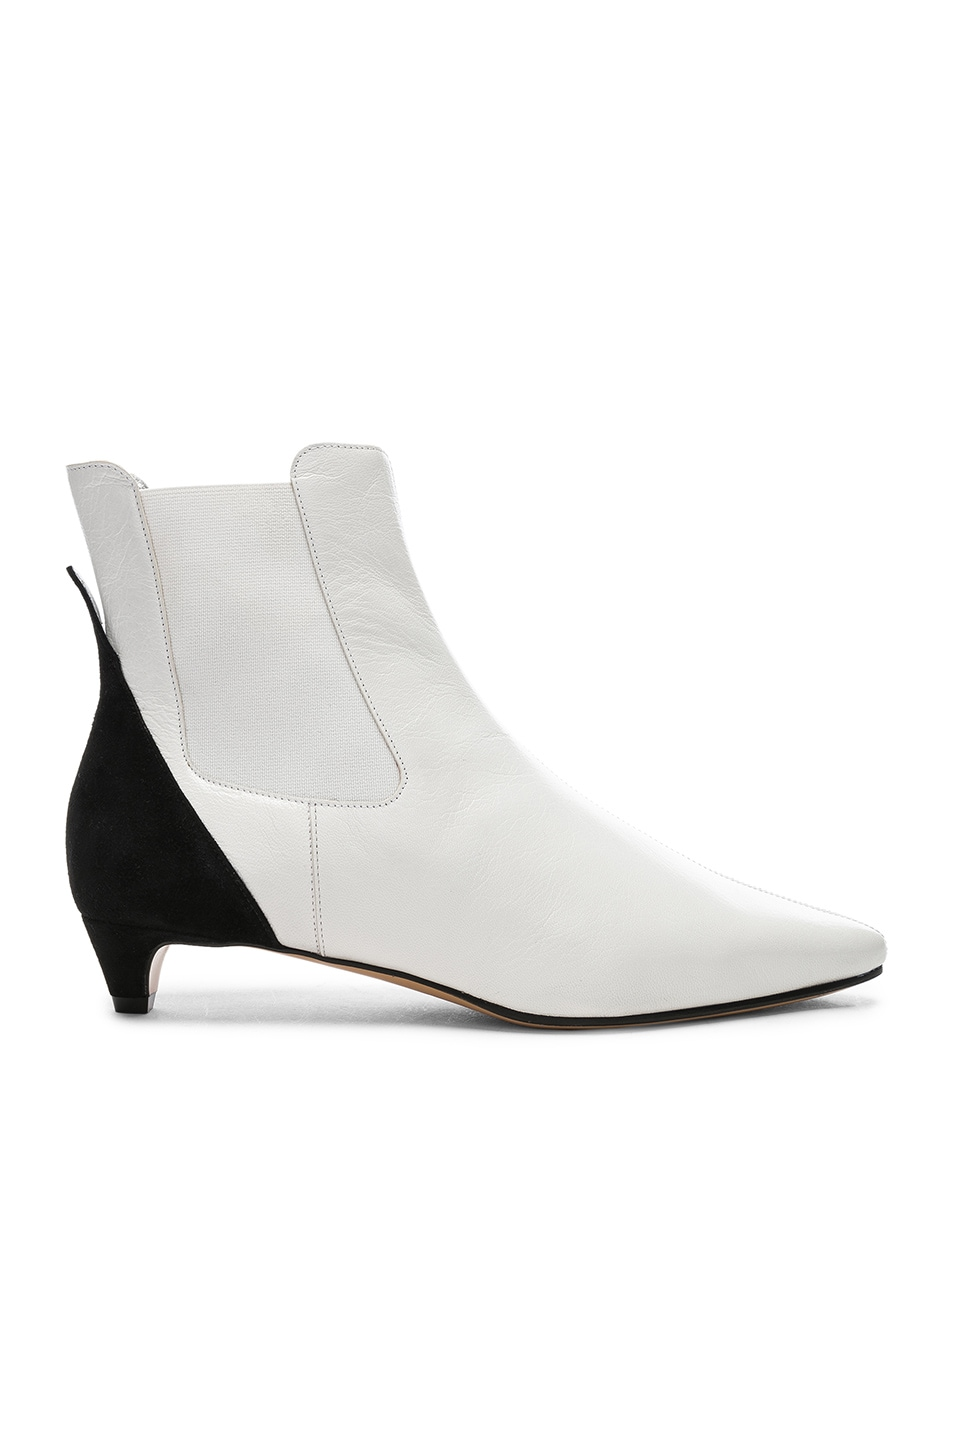 Image 1 of Givenchy GV3 Chelsea Ankle Boots in White & Black